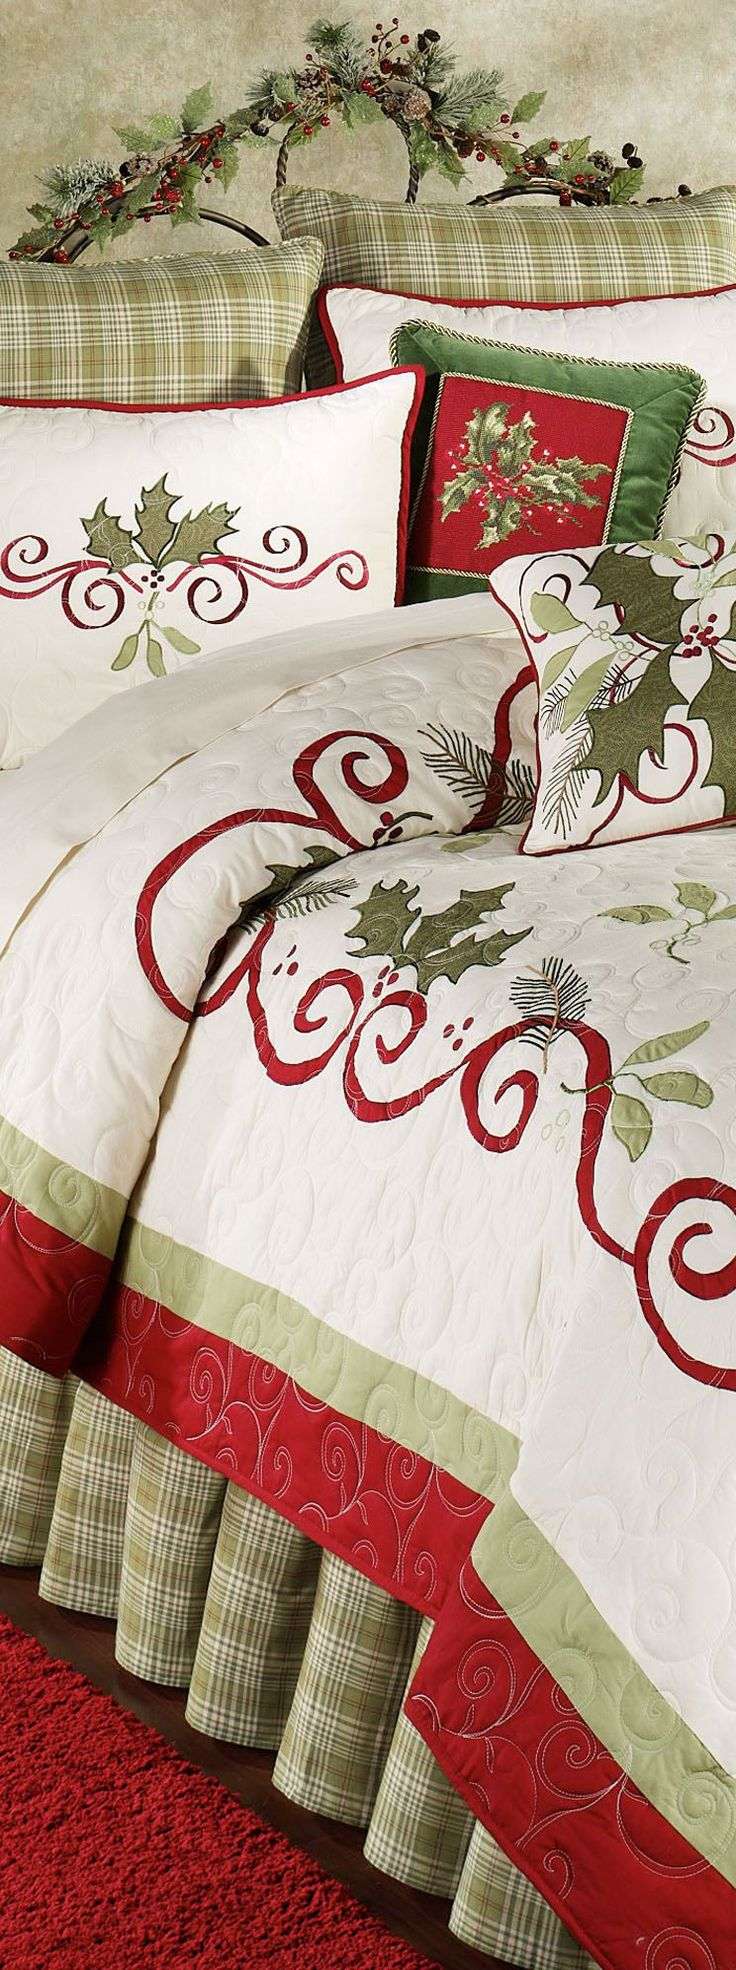 25 Unique Christmas Bedding Ideas On Pinterest